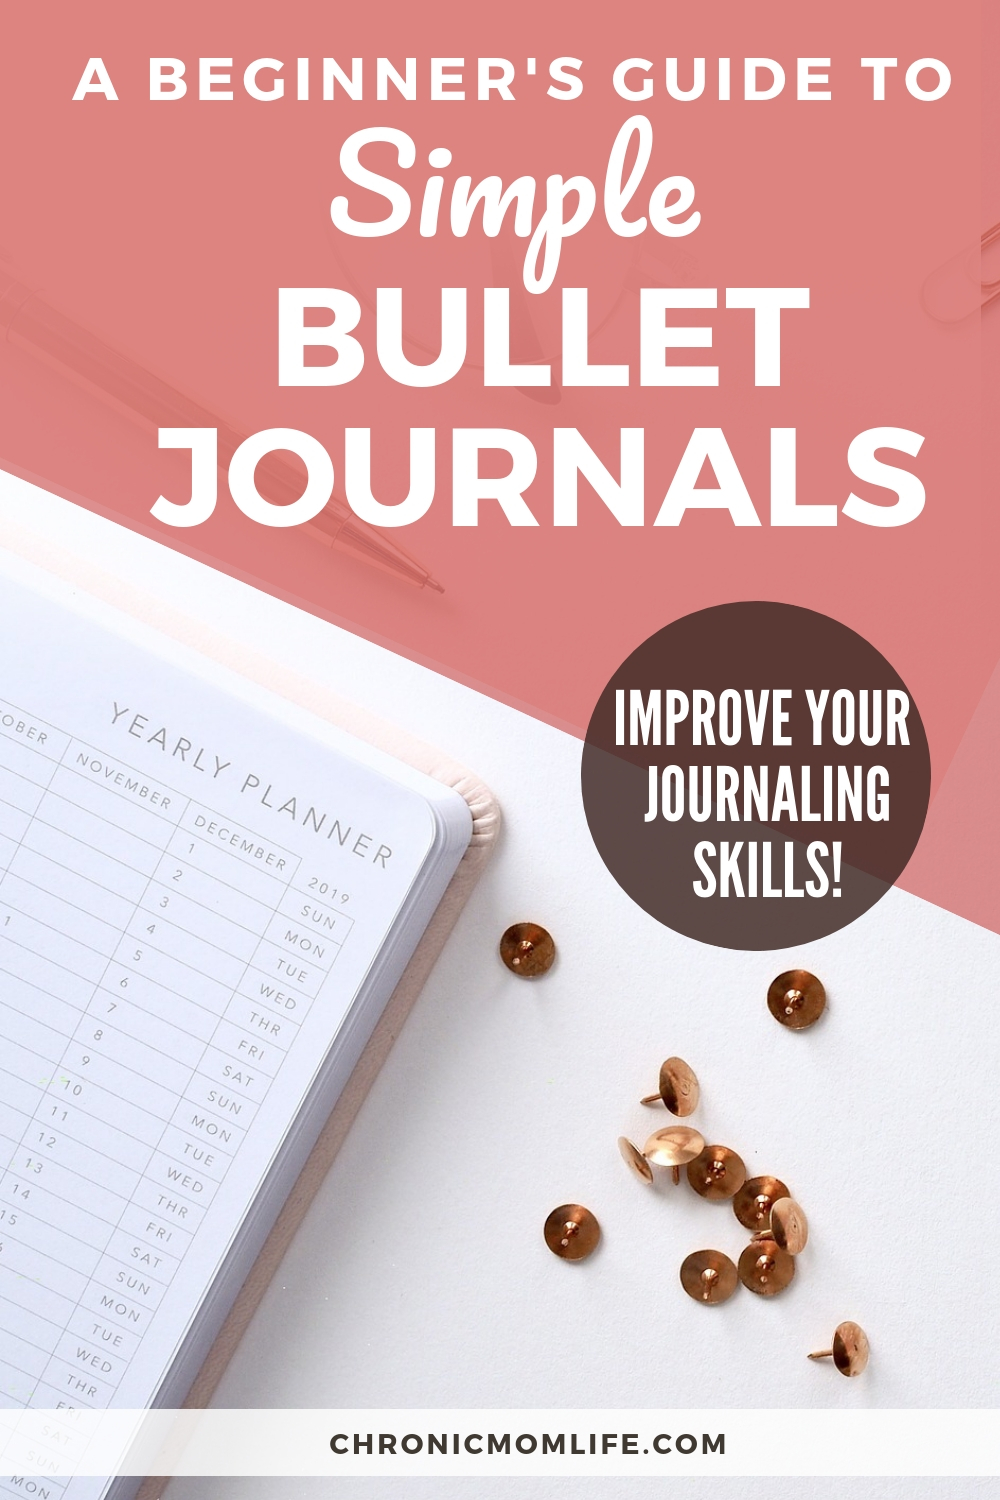 BEGINNER'S GUIDE TO SIMPLE BULLET JOURNALS